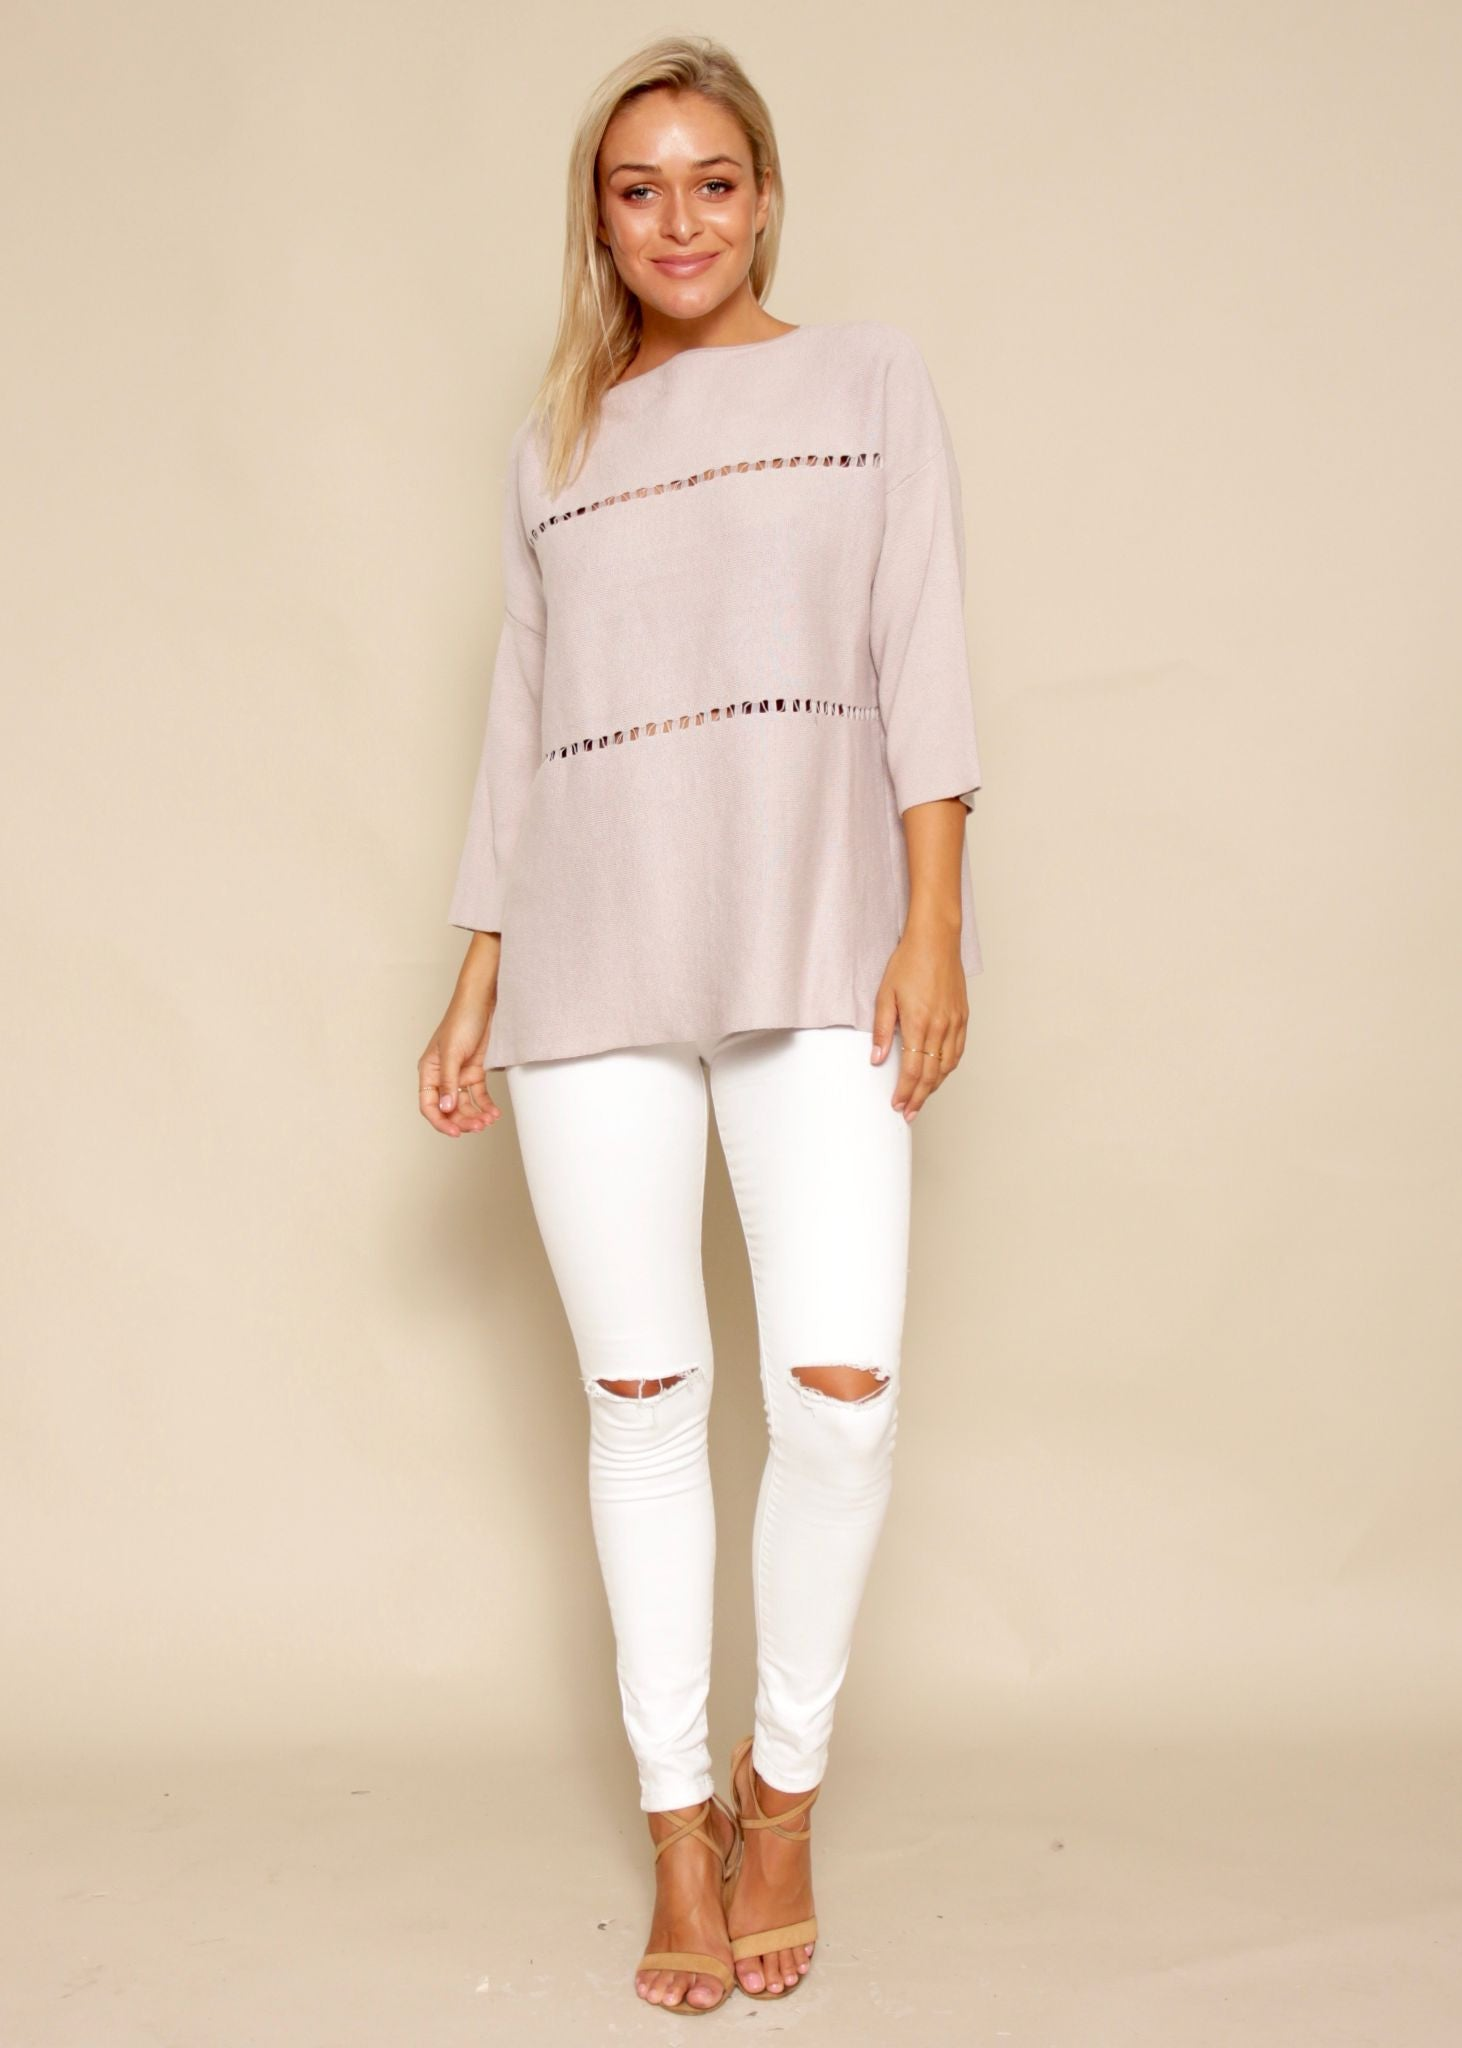 Storm Chaser Sweater - Blush